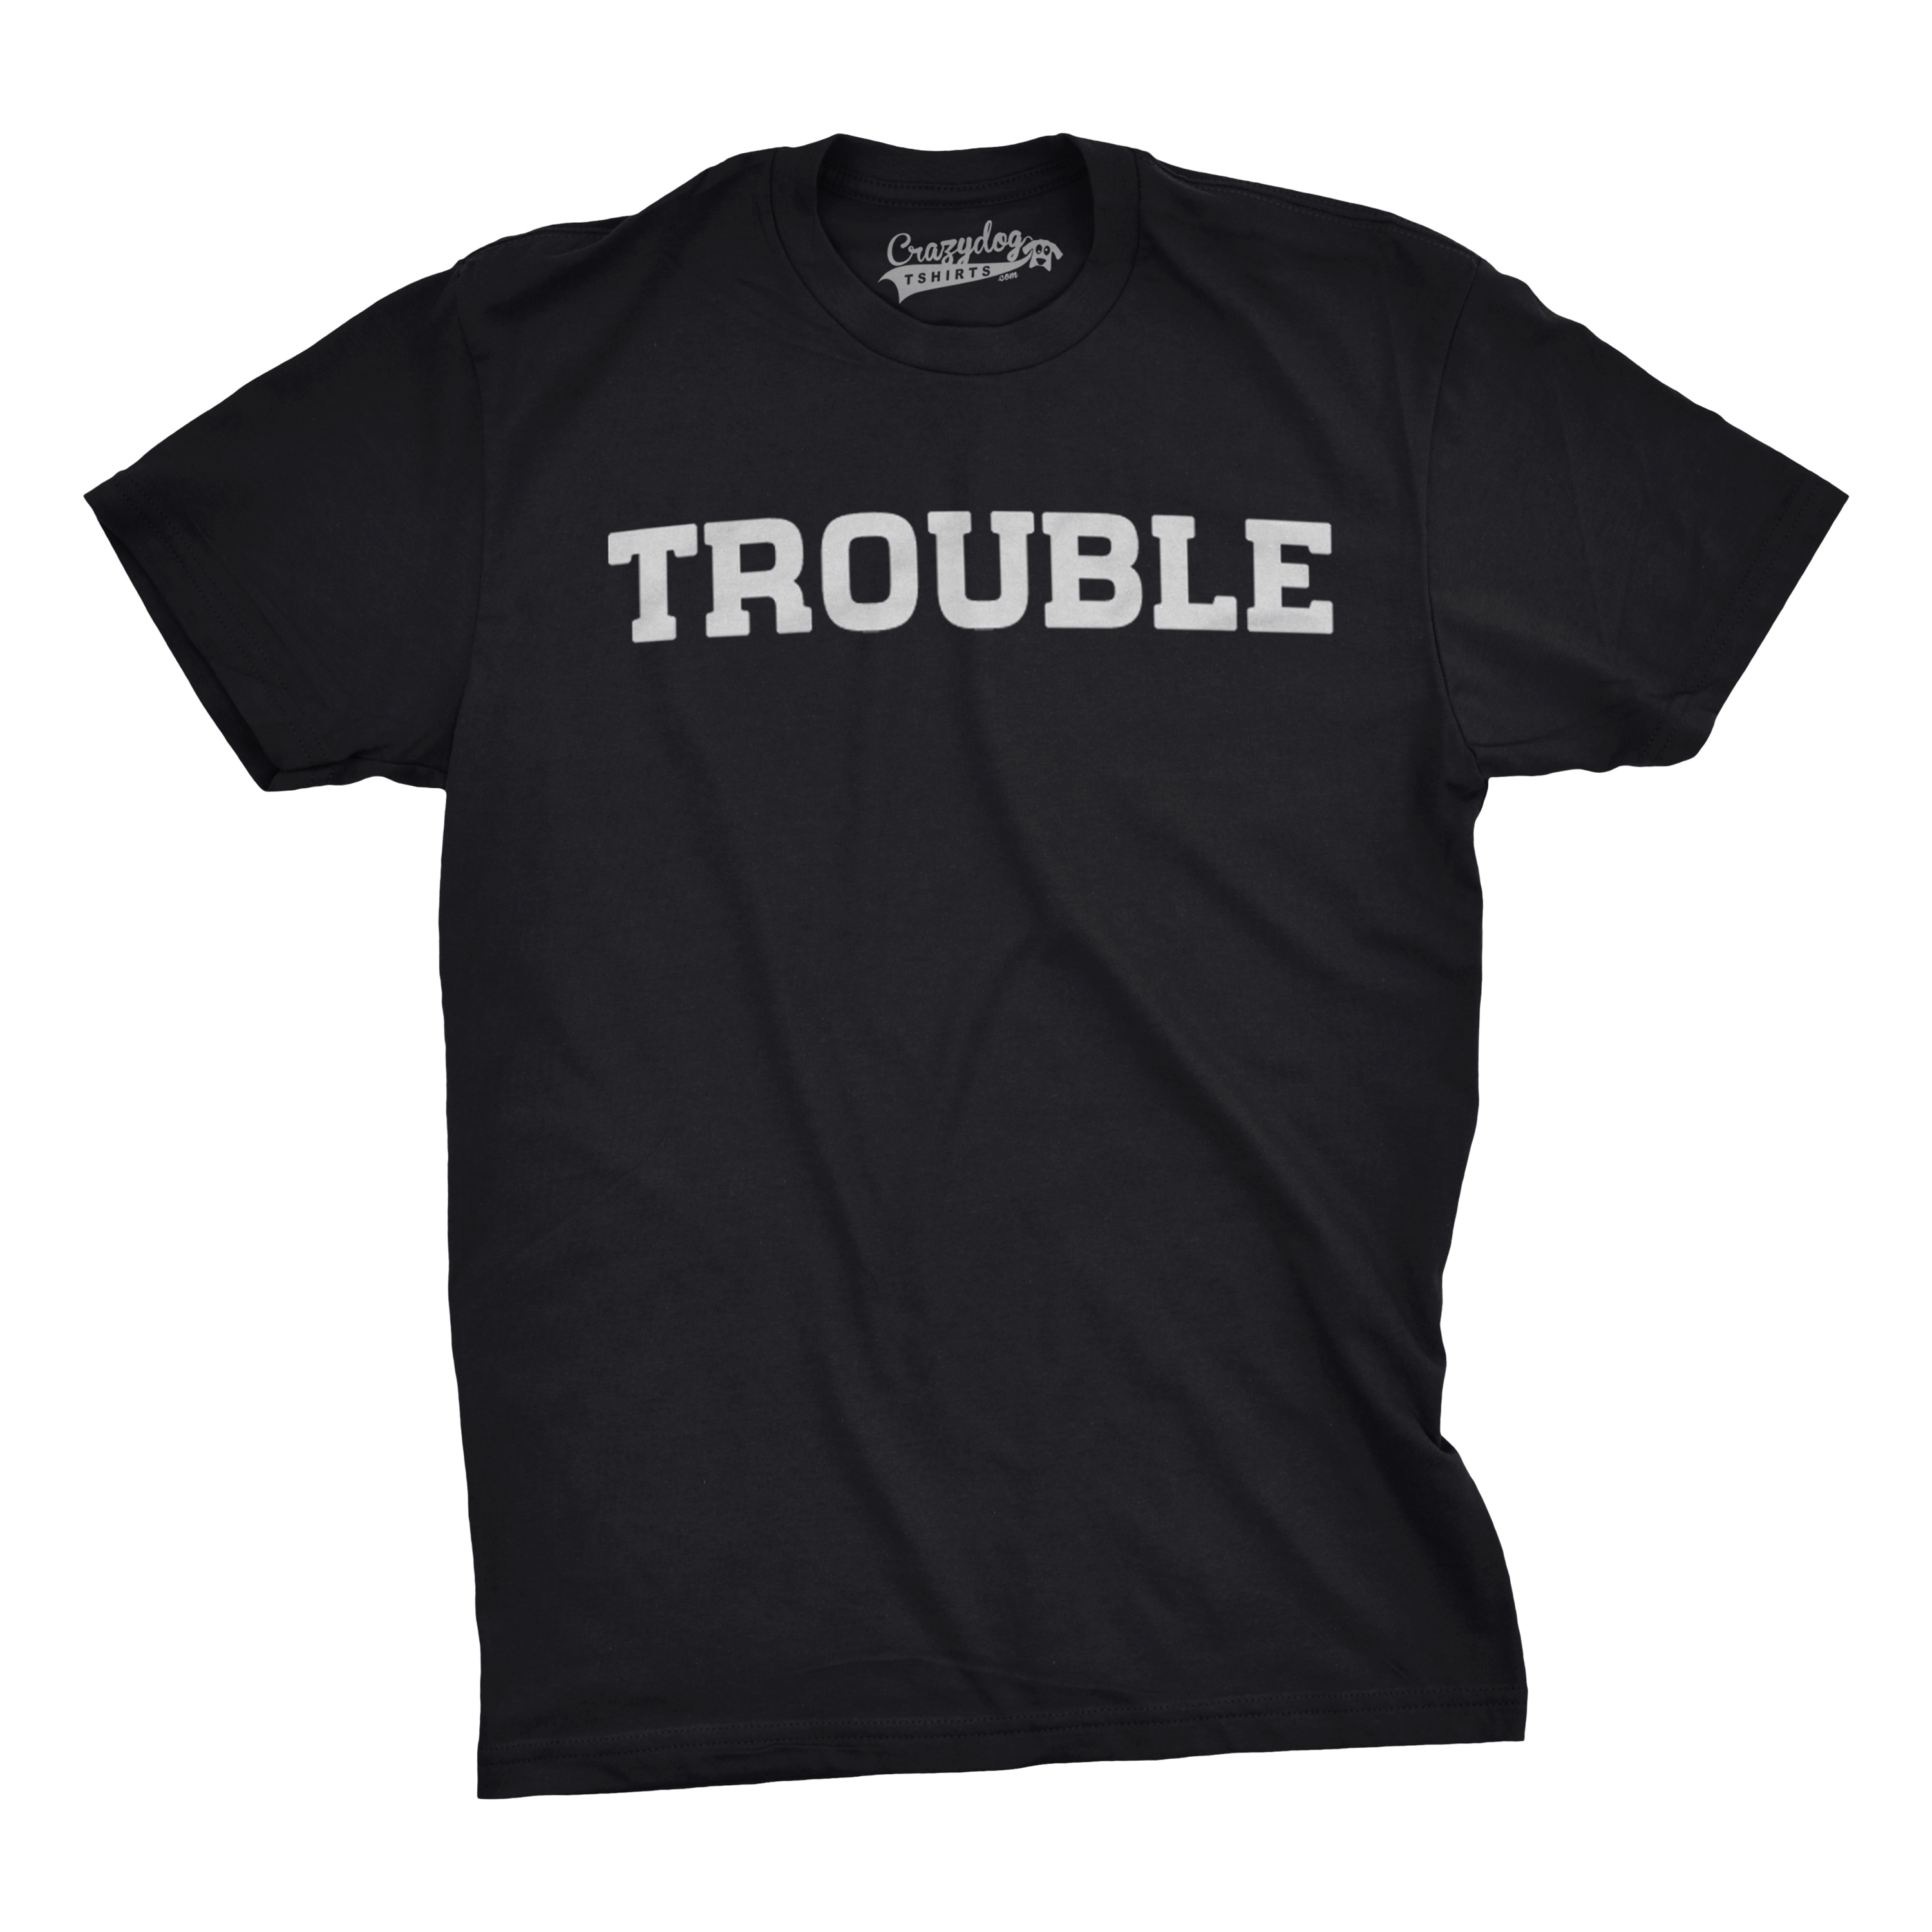 ed209b7fce7e Shop Youth Trouble Shirt Funny T shirts for Kids Hilarious Troublemaker  Gift Idea Cute T shirt - Free Shipping On Orders Over $45 - Overstock -  18849325